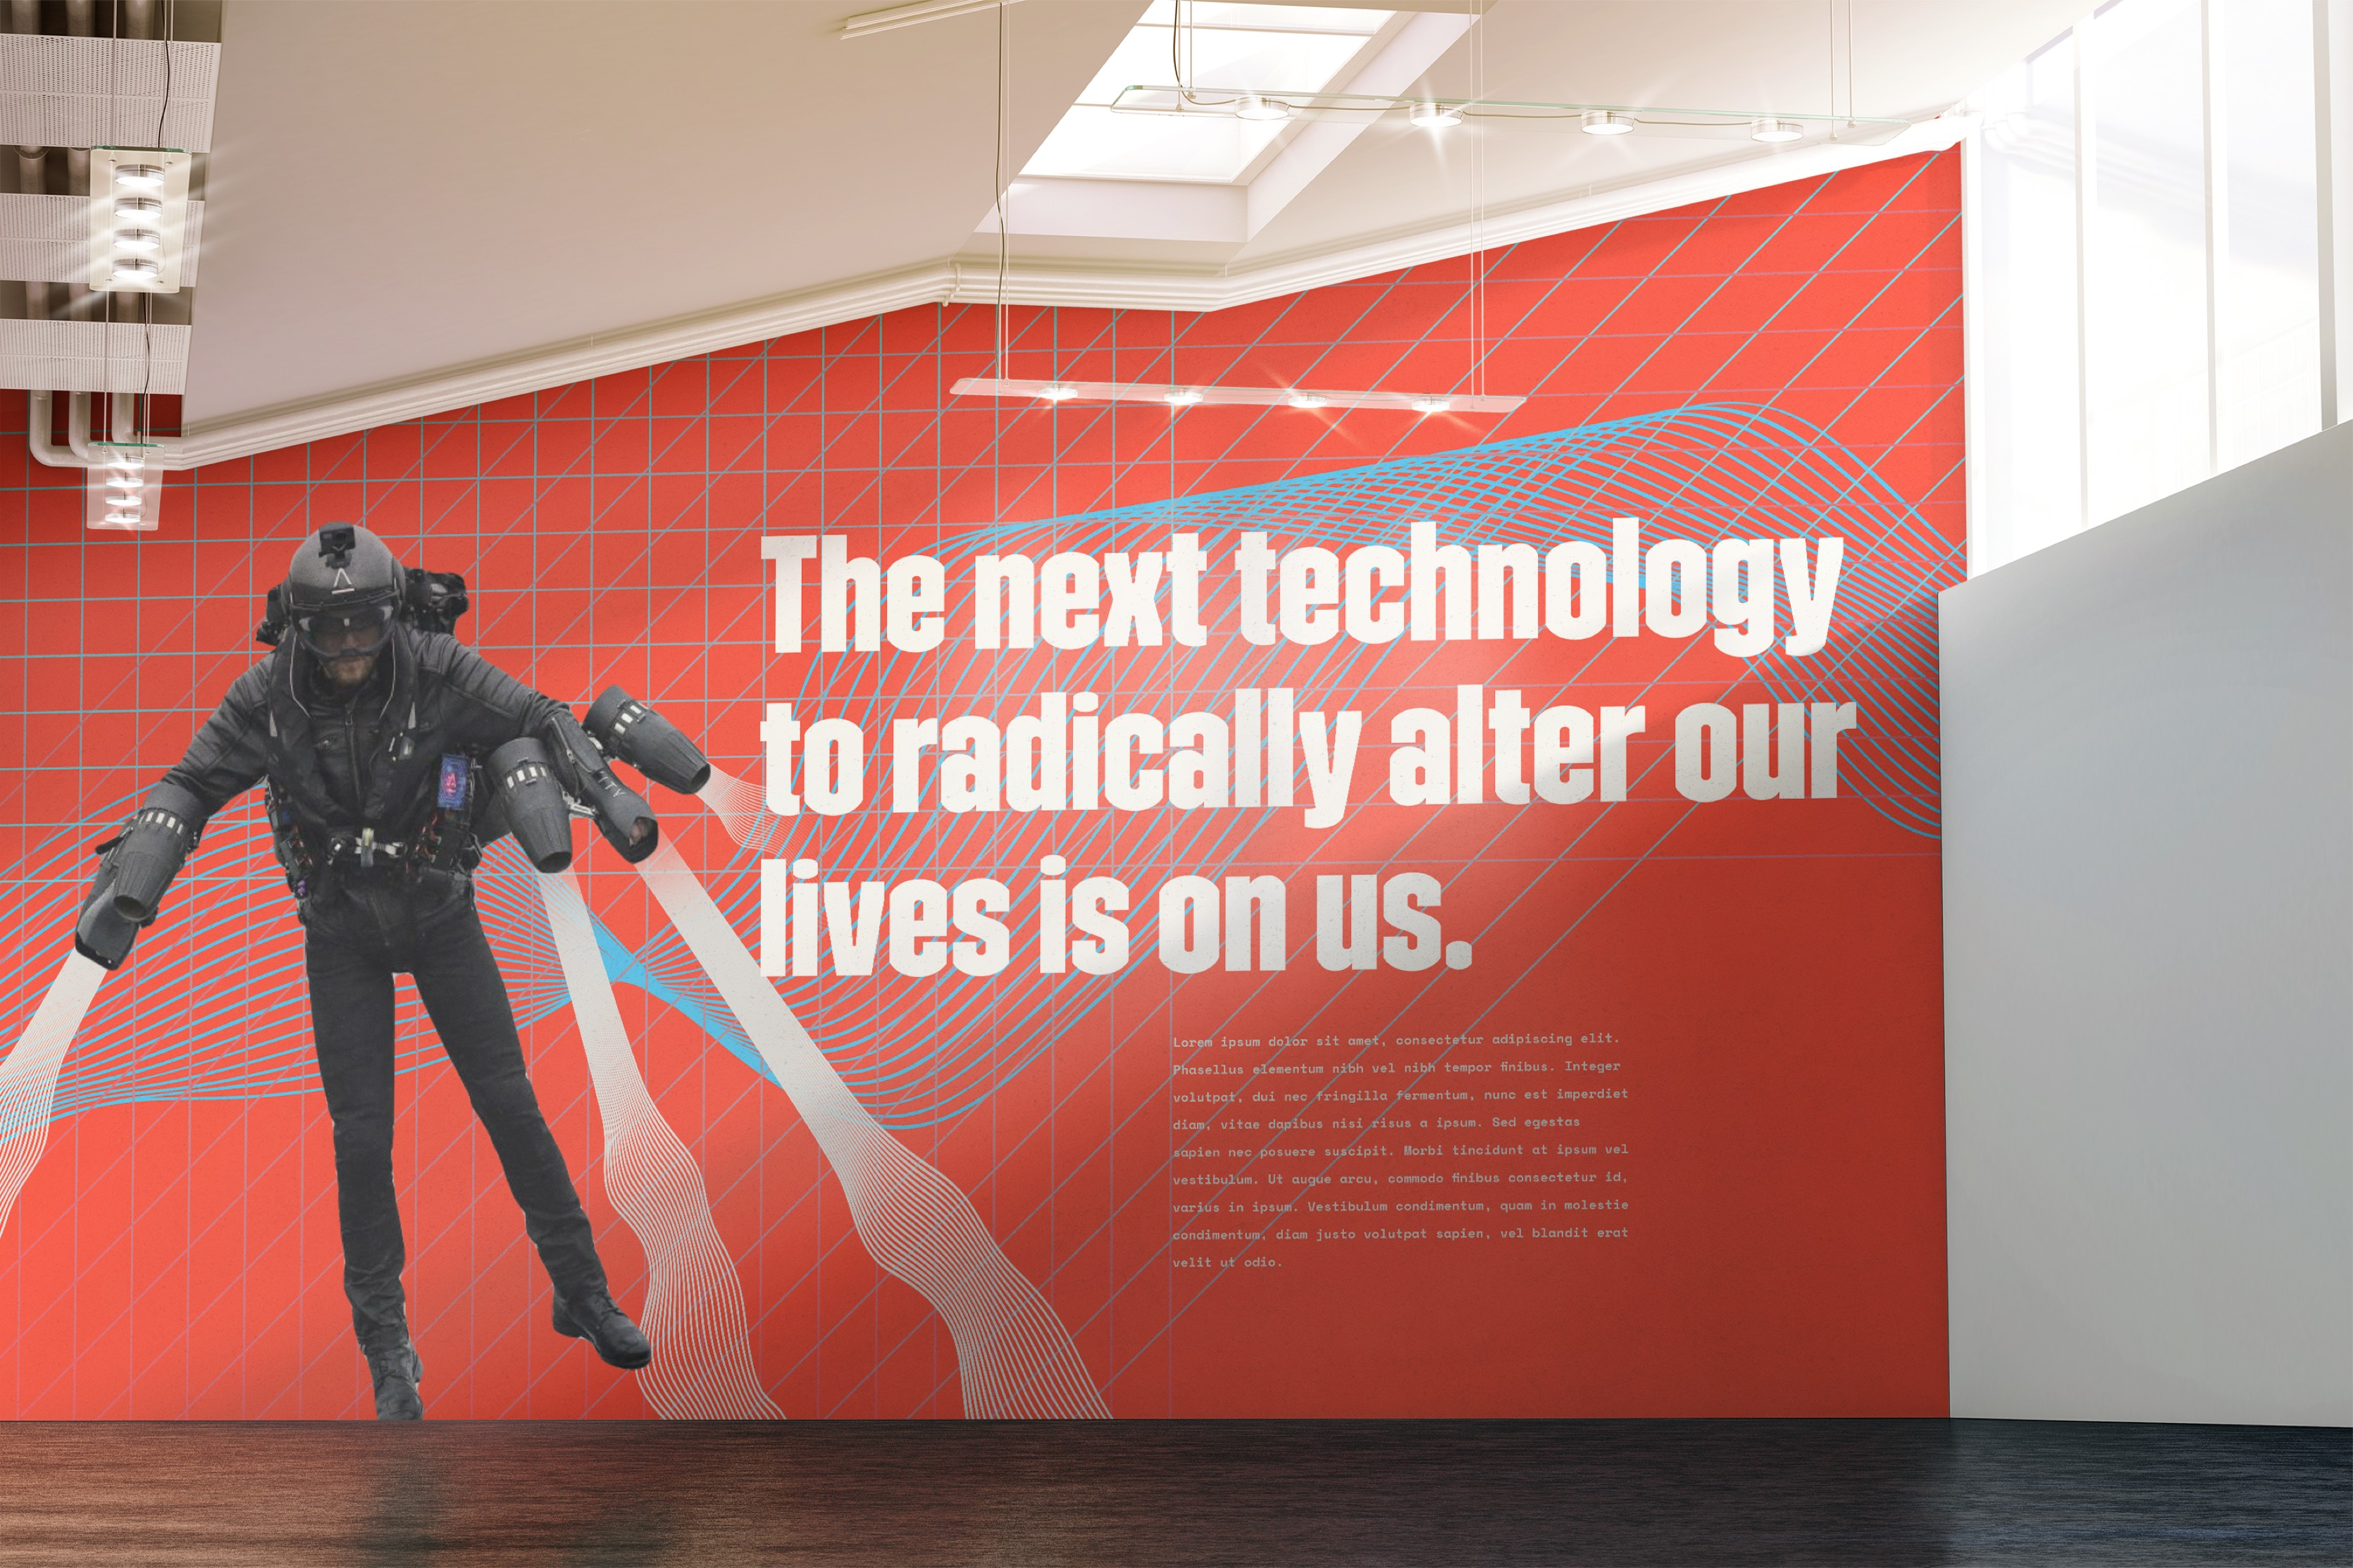 Wired to Wear entry wall graphic, showing man with a jet pack.